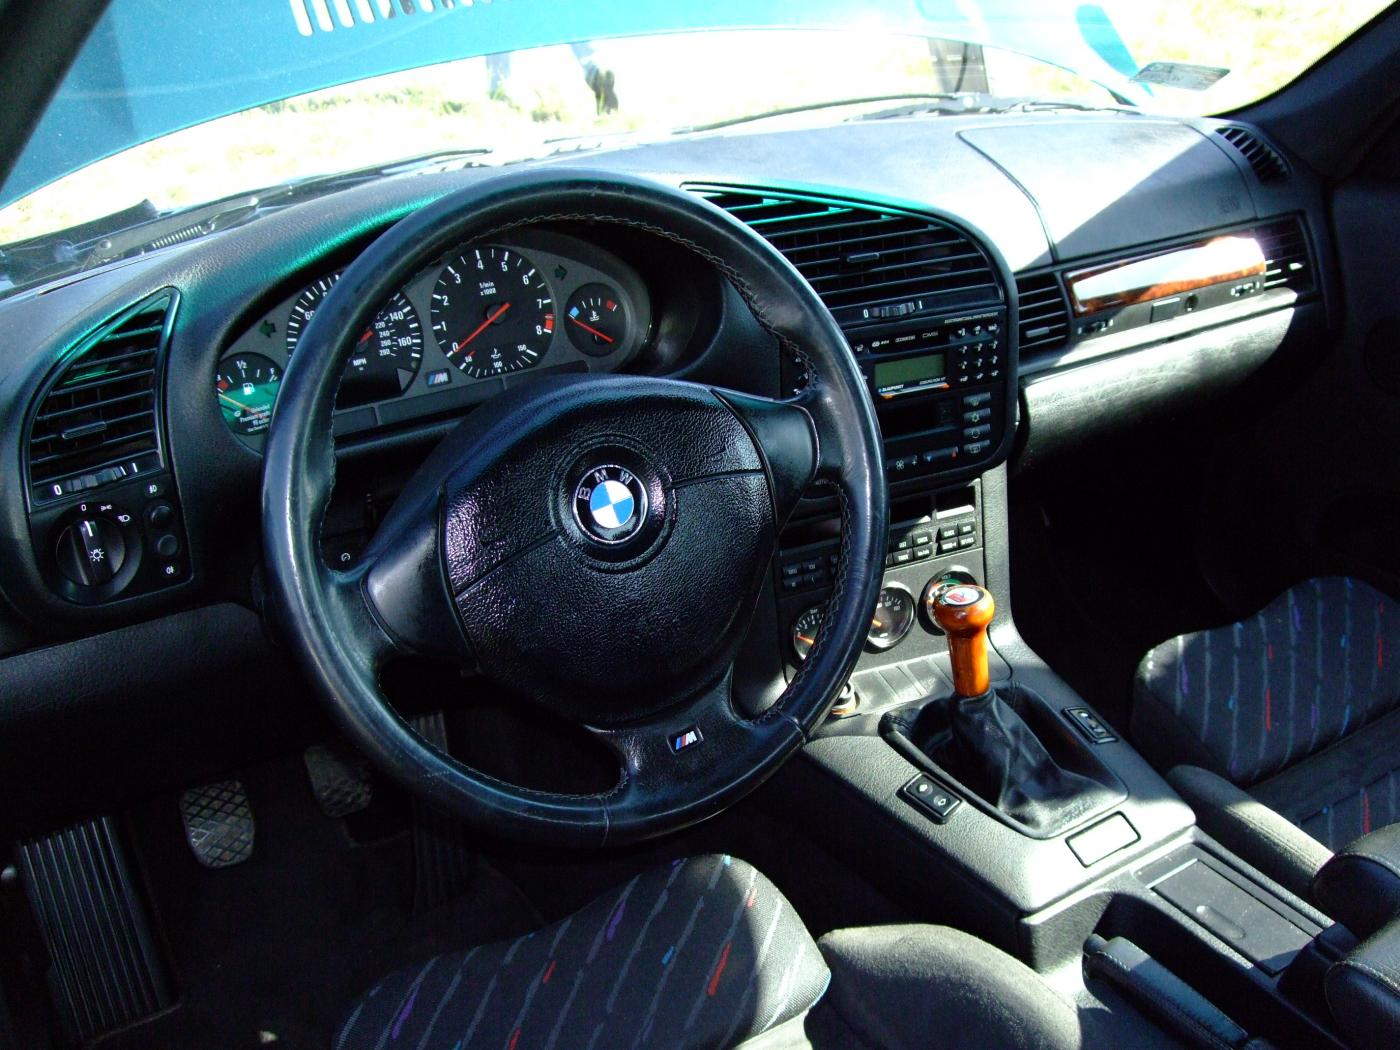 Interieur-M3-E36.jpeg